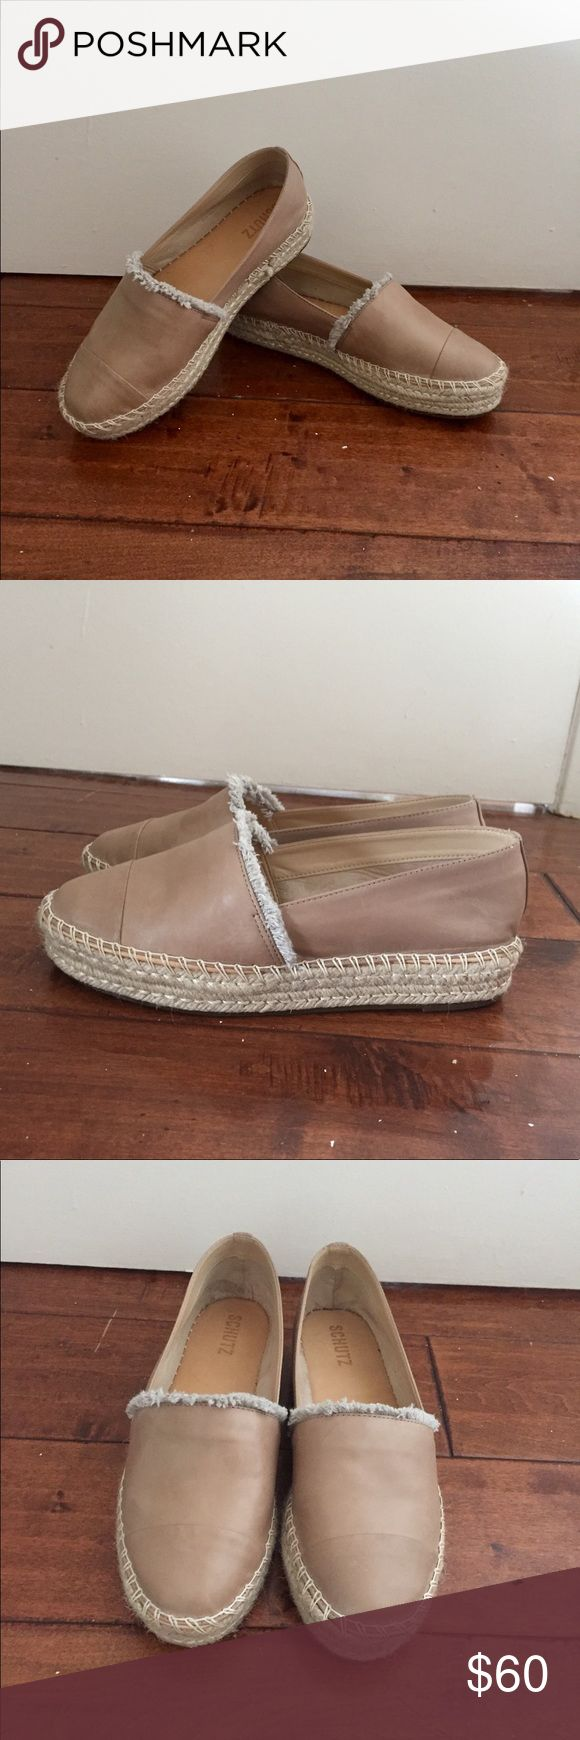 Schutz Espadrilles Chic Nude Espadrilles! Brand new and never worn! High quality and comfort! A necessity for every woman's shoe collection! Excellent for every day looks or for days out! Note that there is a tiny stain only noticeable up close on the right shoe that I saw after purchasing these, as shown in the second to last photo. Comes with cute dust bag. SCHUTZ Shoes Espadrilles